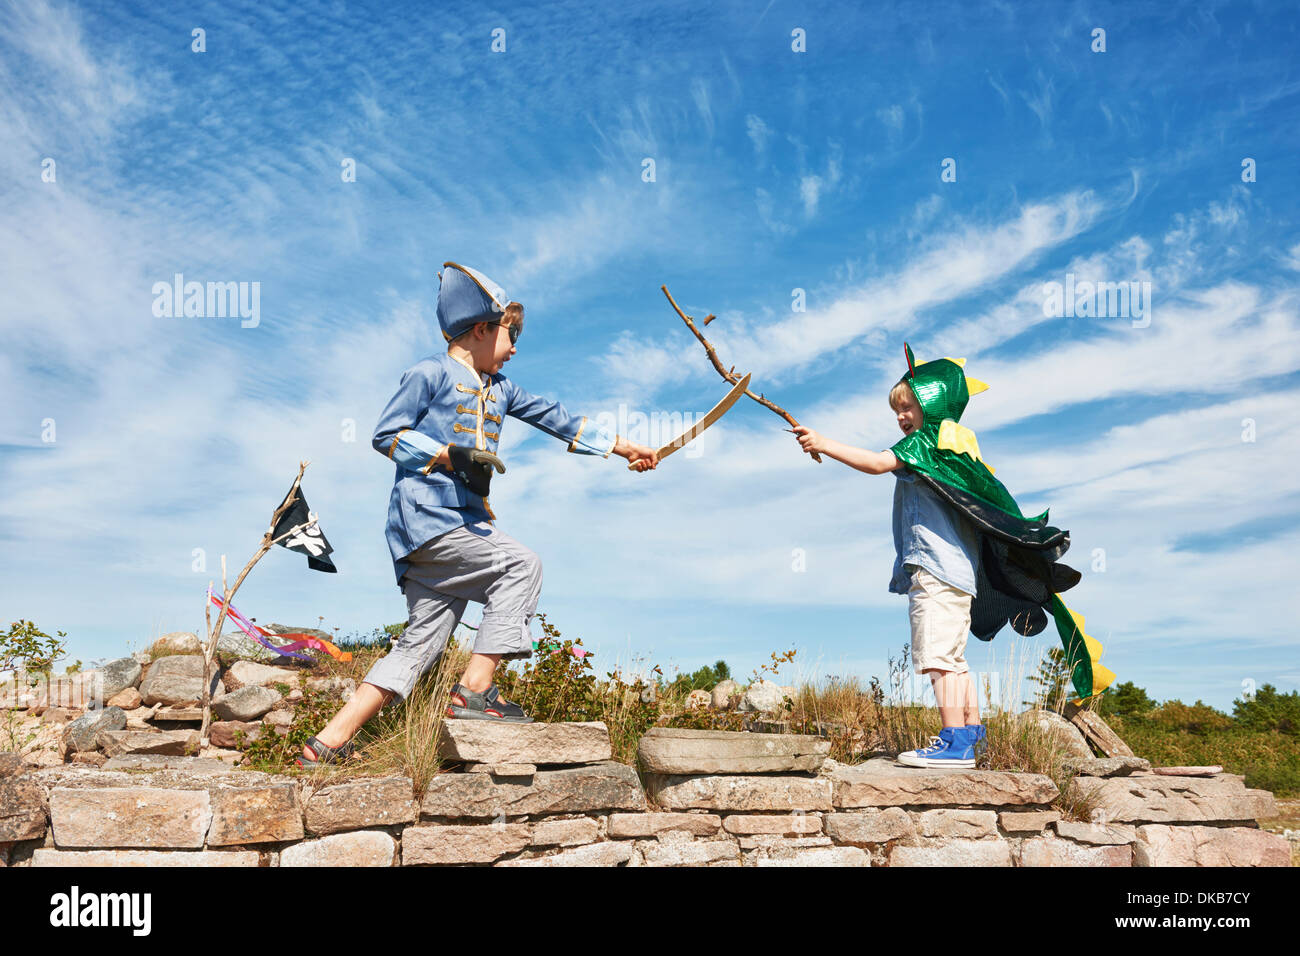 Two boys in fancy dress play fighting with sticks, Eggergrund, Sweden - Stock Image